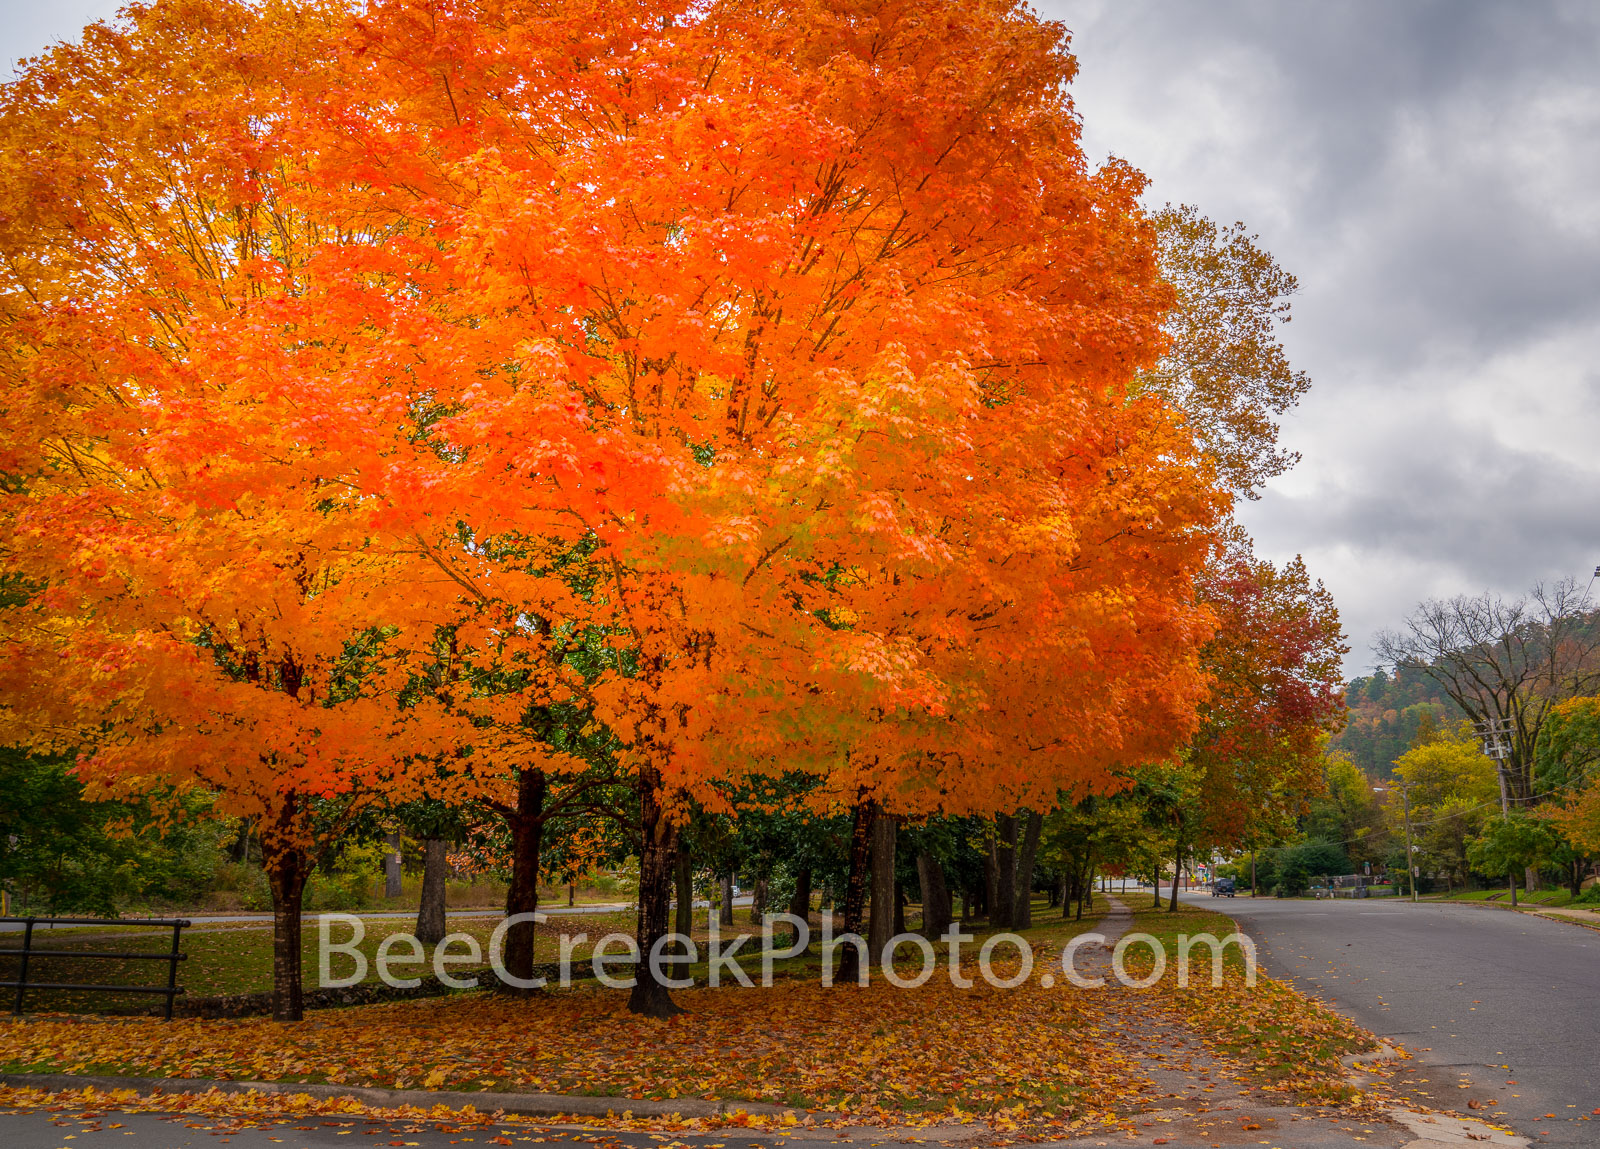 Sugar Maples in Fall  - What a site to see two full size sugar maples trees with their fall colors on display.  It was stunning...